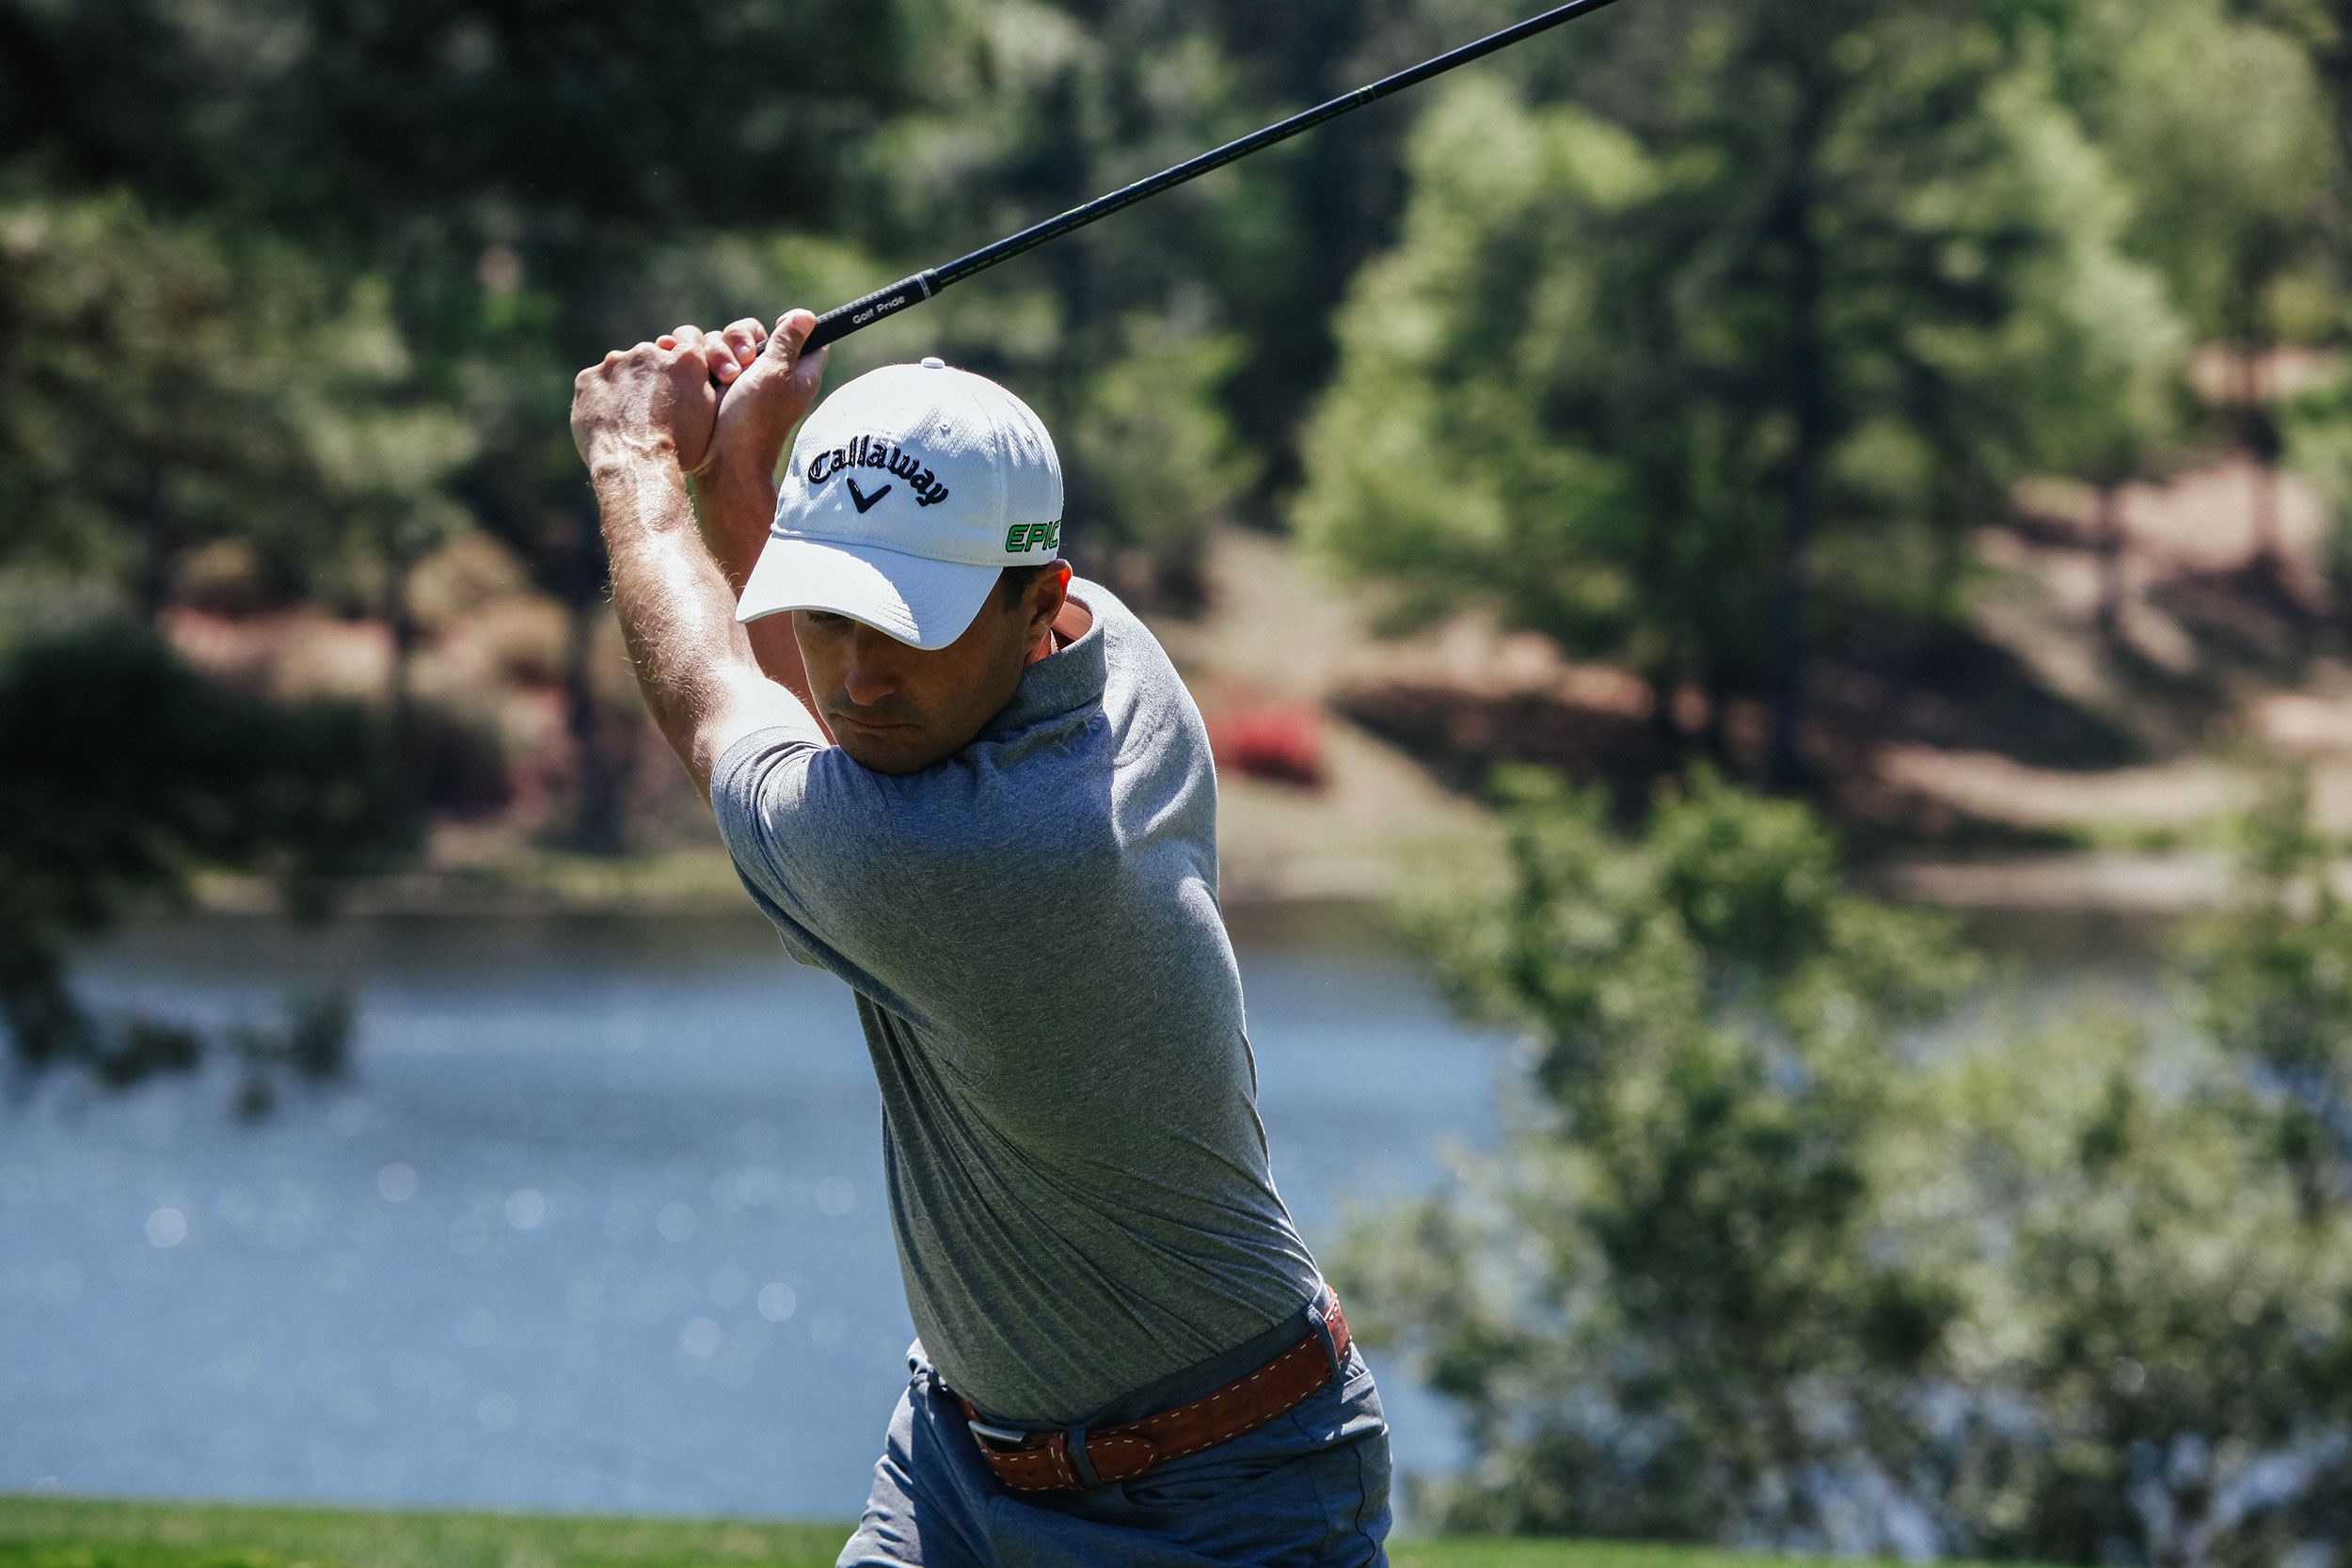 Dunning-Golf-Atlanta-16